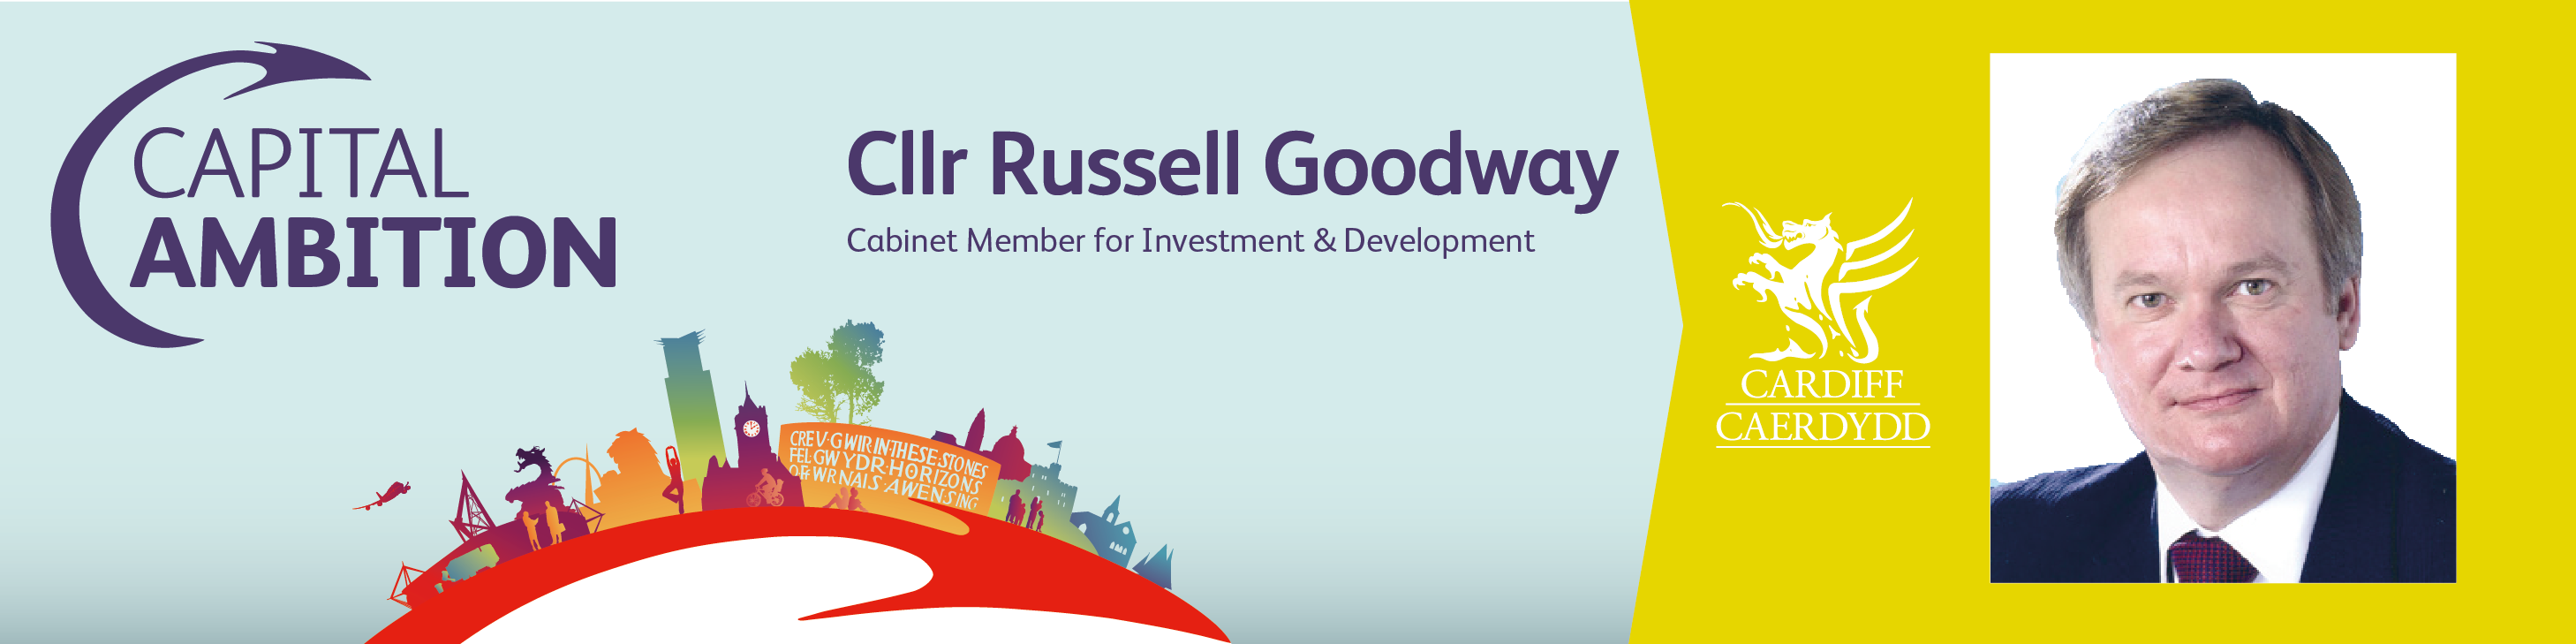 Councillor Russell Goodway